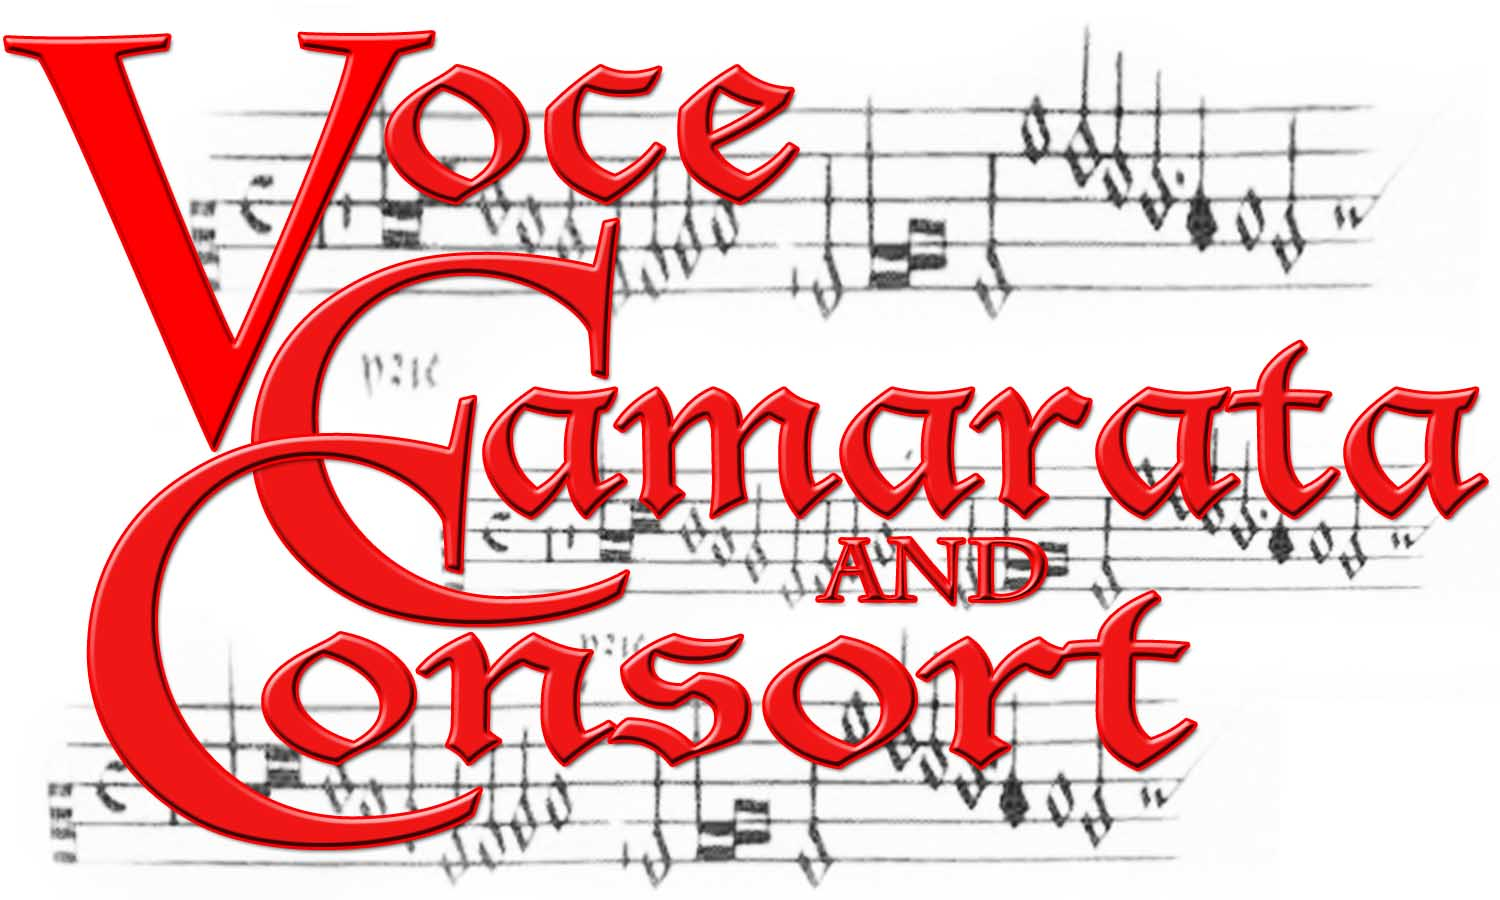 Voce Camarata and Consort of Raleigh